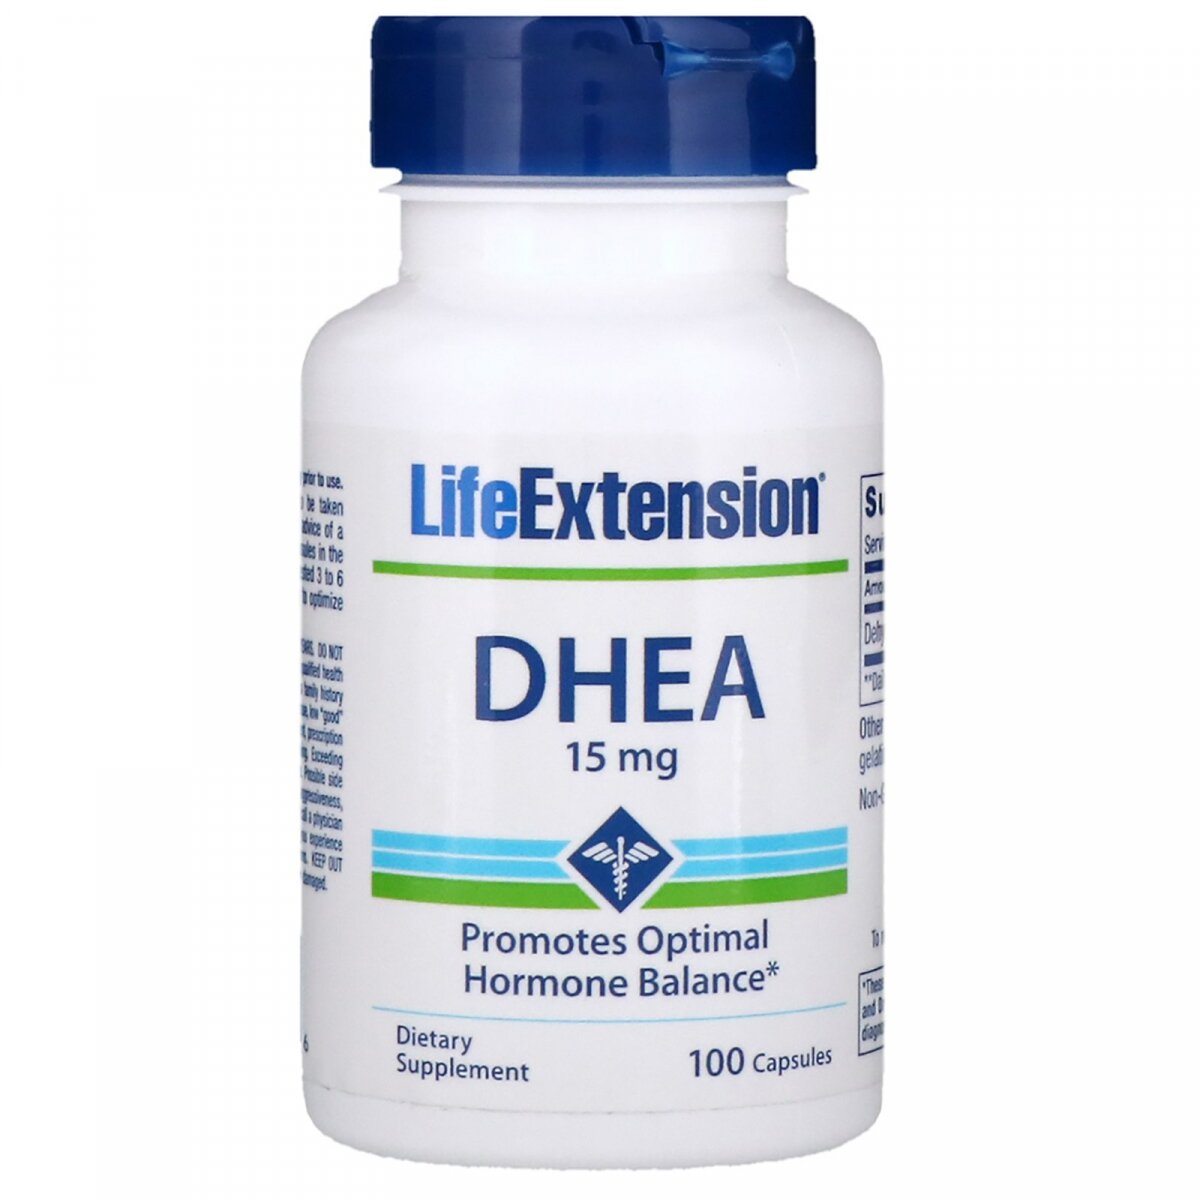 ДГЭА, DHEA, Life Extension, 15 мг, 100 капсул